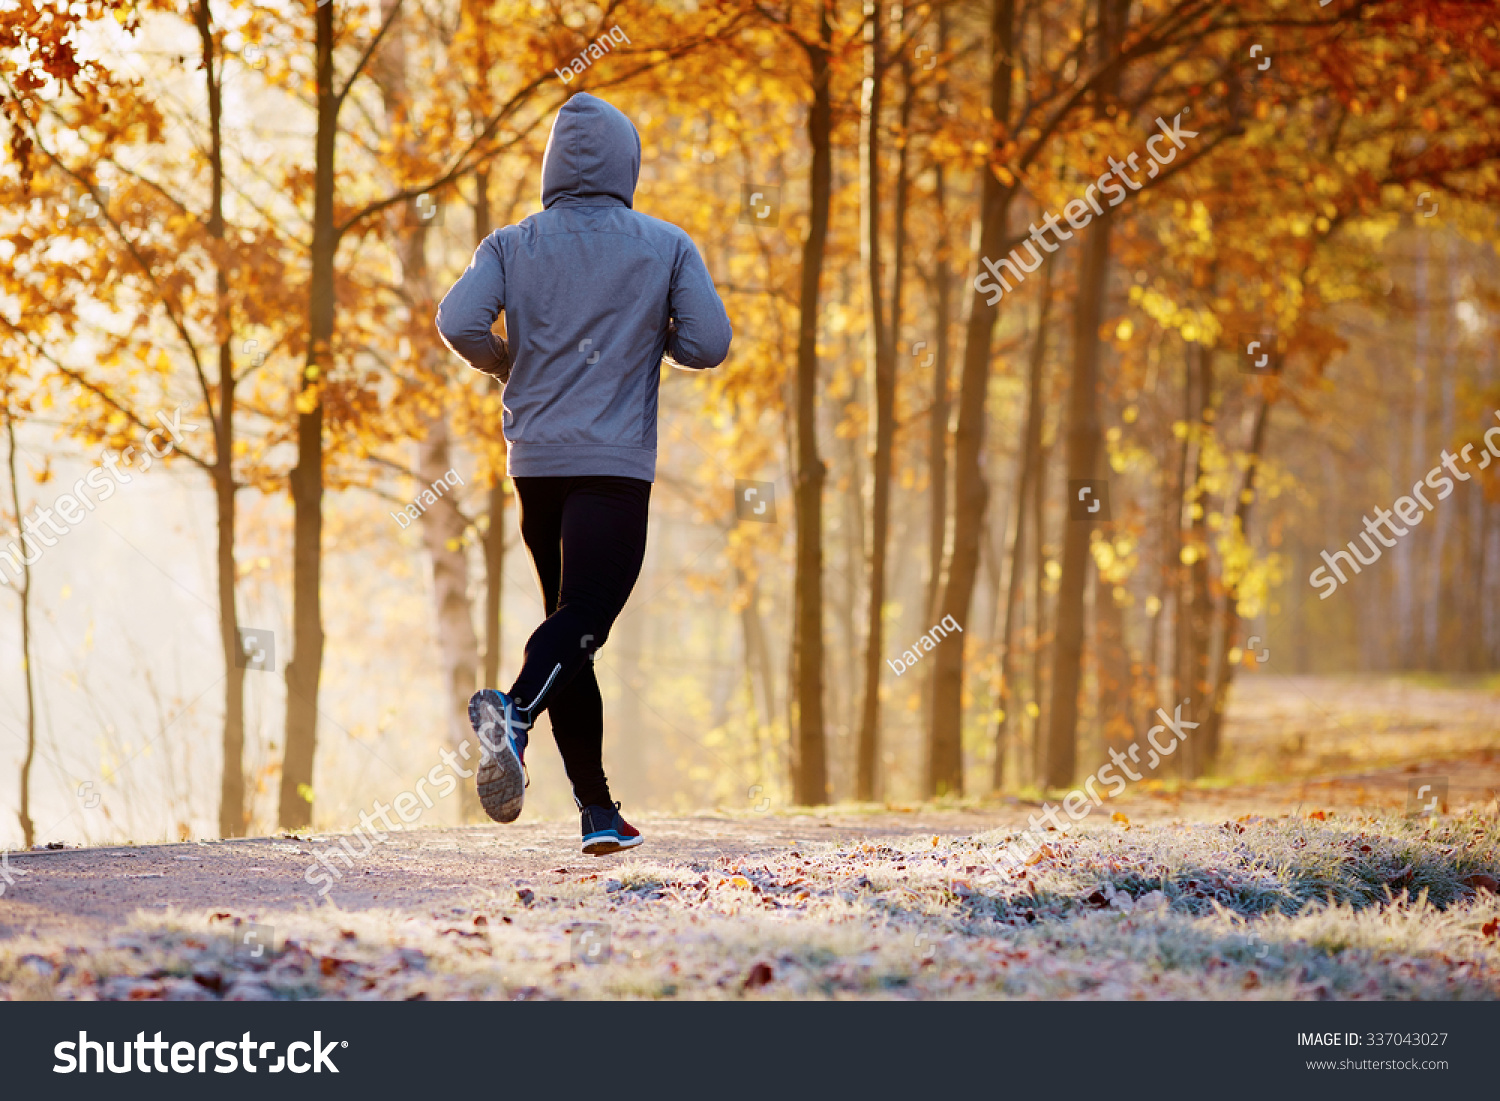 Fall Evening Wallpapers Young Man Running Park During Autumn Stock Photo 337043027